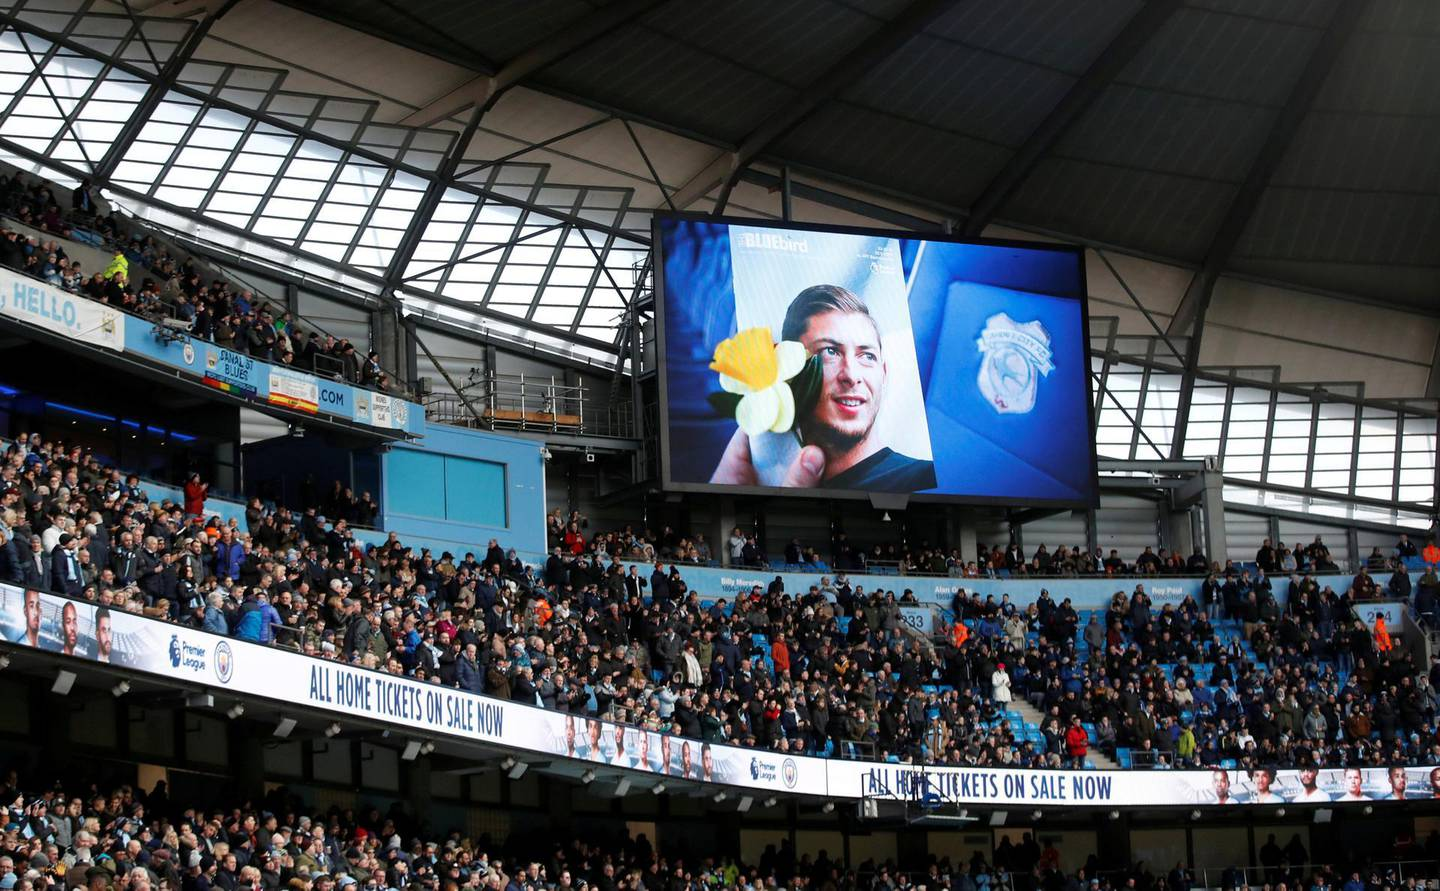 """FILE PHOTO: Soccer Football - Premier League - Manchester City v Chelsea - Etihad Stadium, Manchester, Britain - February 10, 2019  General view of the big screen paying tribute to Emiliano Sala before the match        Action Images via Reuters/Carl Recine  EDITORIAL USE ONLY. No use with unauthorized audio, video, data, fixture lists, club/league logos or """"live"""" services. Online in-match use limited to 75 images, no video emulation. No use in betting, games or single club/league/player publications.  Please contact your account representative for further details./File Photo"""